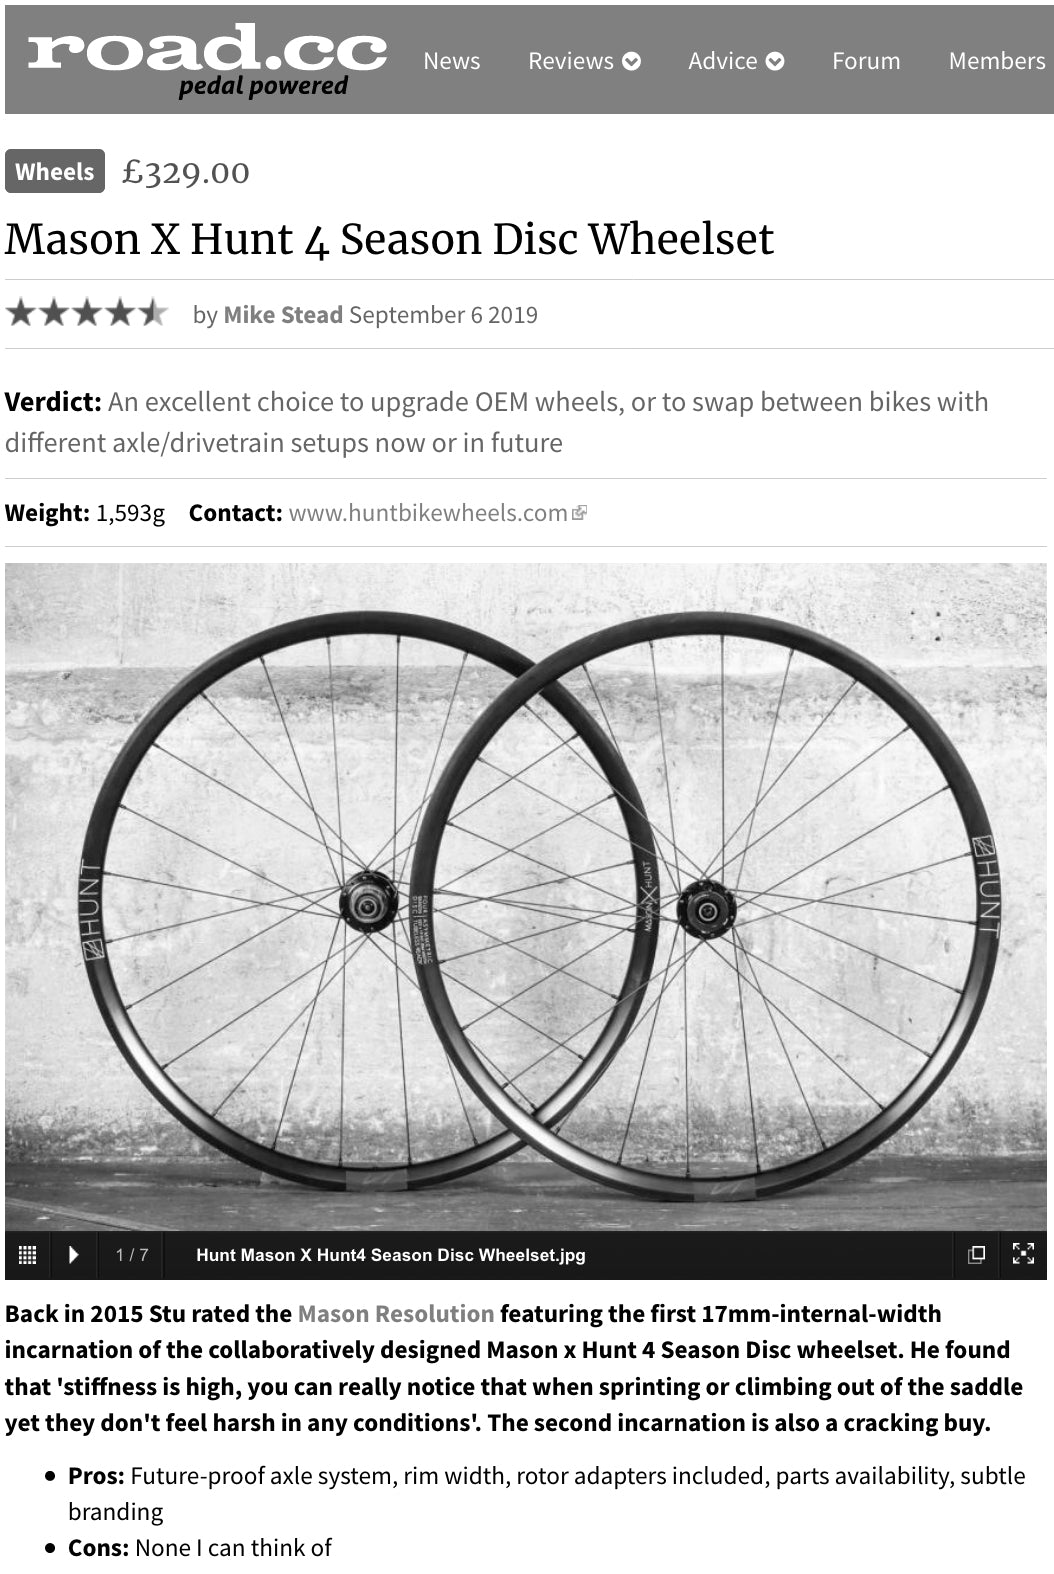 Mason x Hunt 4 Season Disc Road Wheelset Review